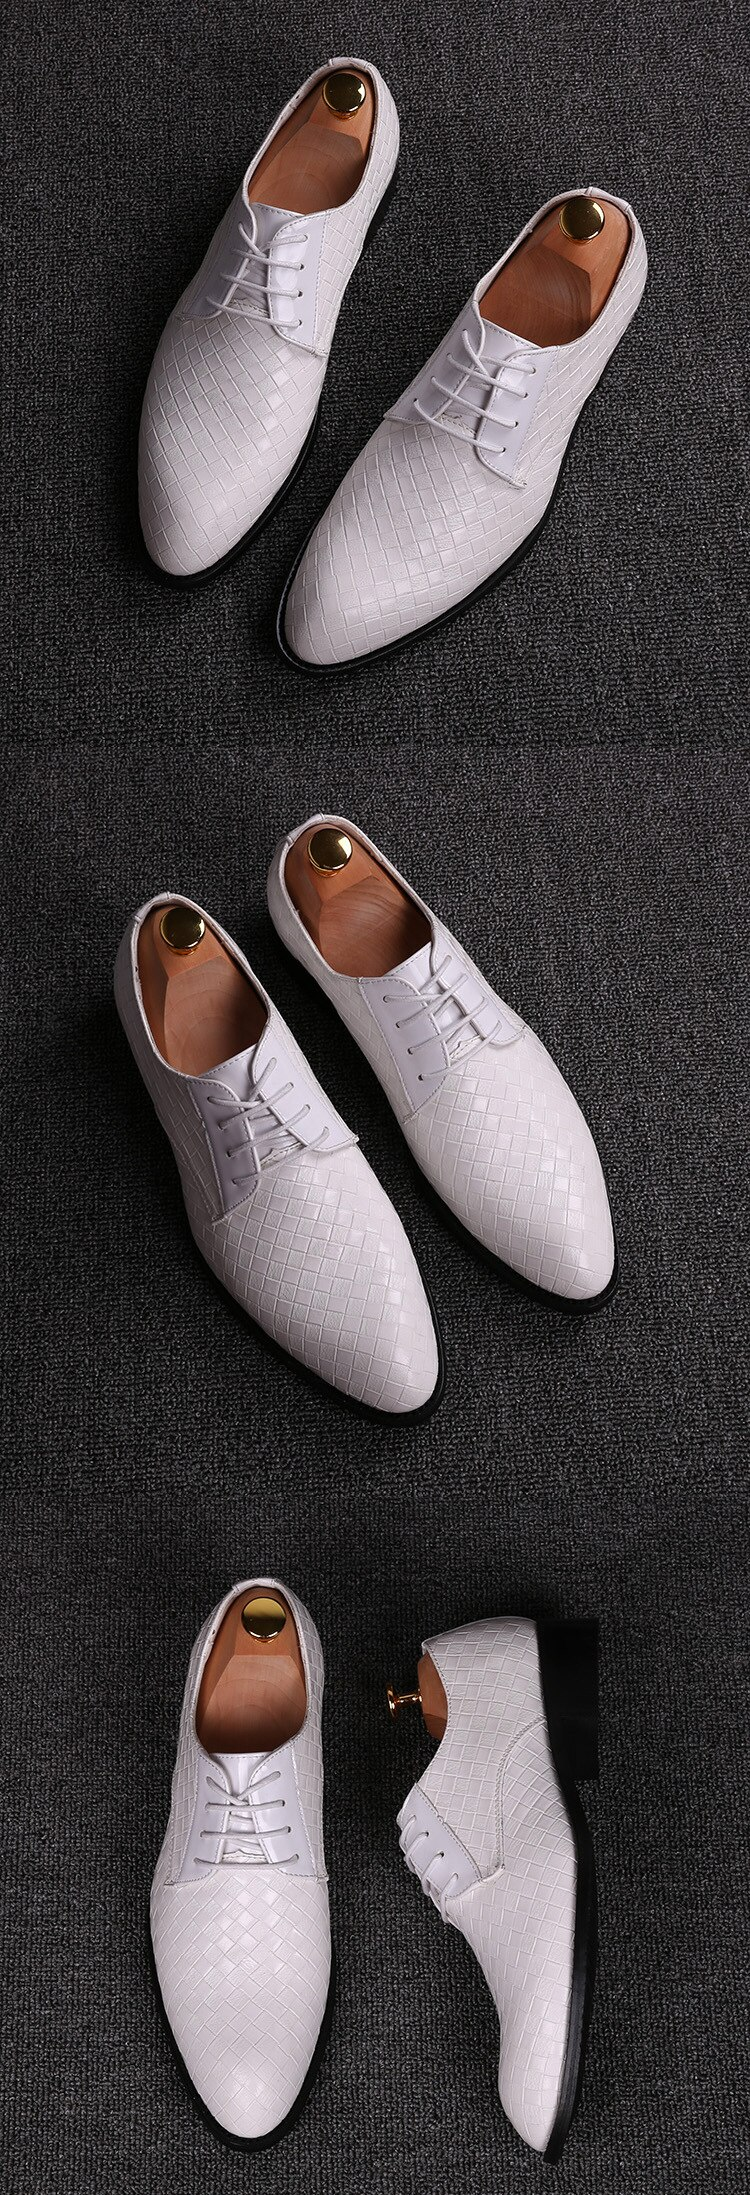 Alexbu Dress Men's Shoes Man Spring Fashion Pointed Toe Wedding Shoe Lace Up High Quality Formal Casual Shoes Trend Comfortable